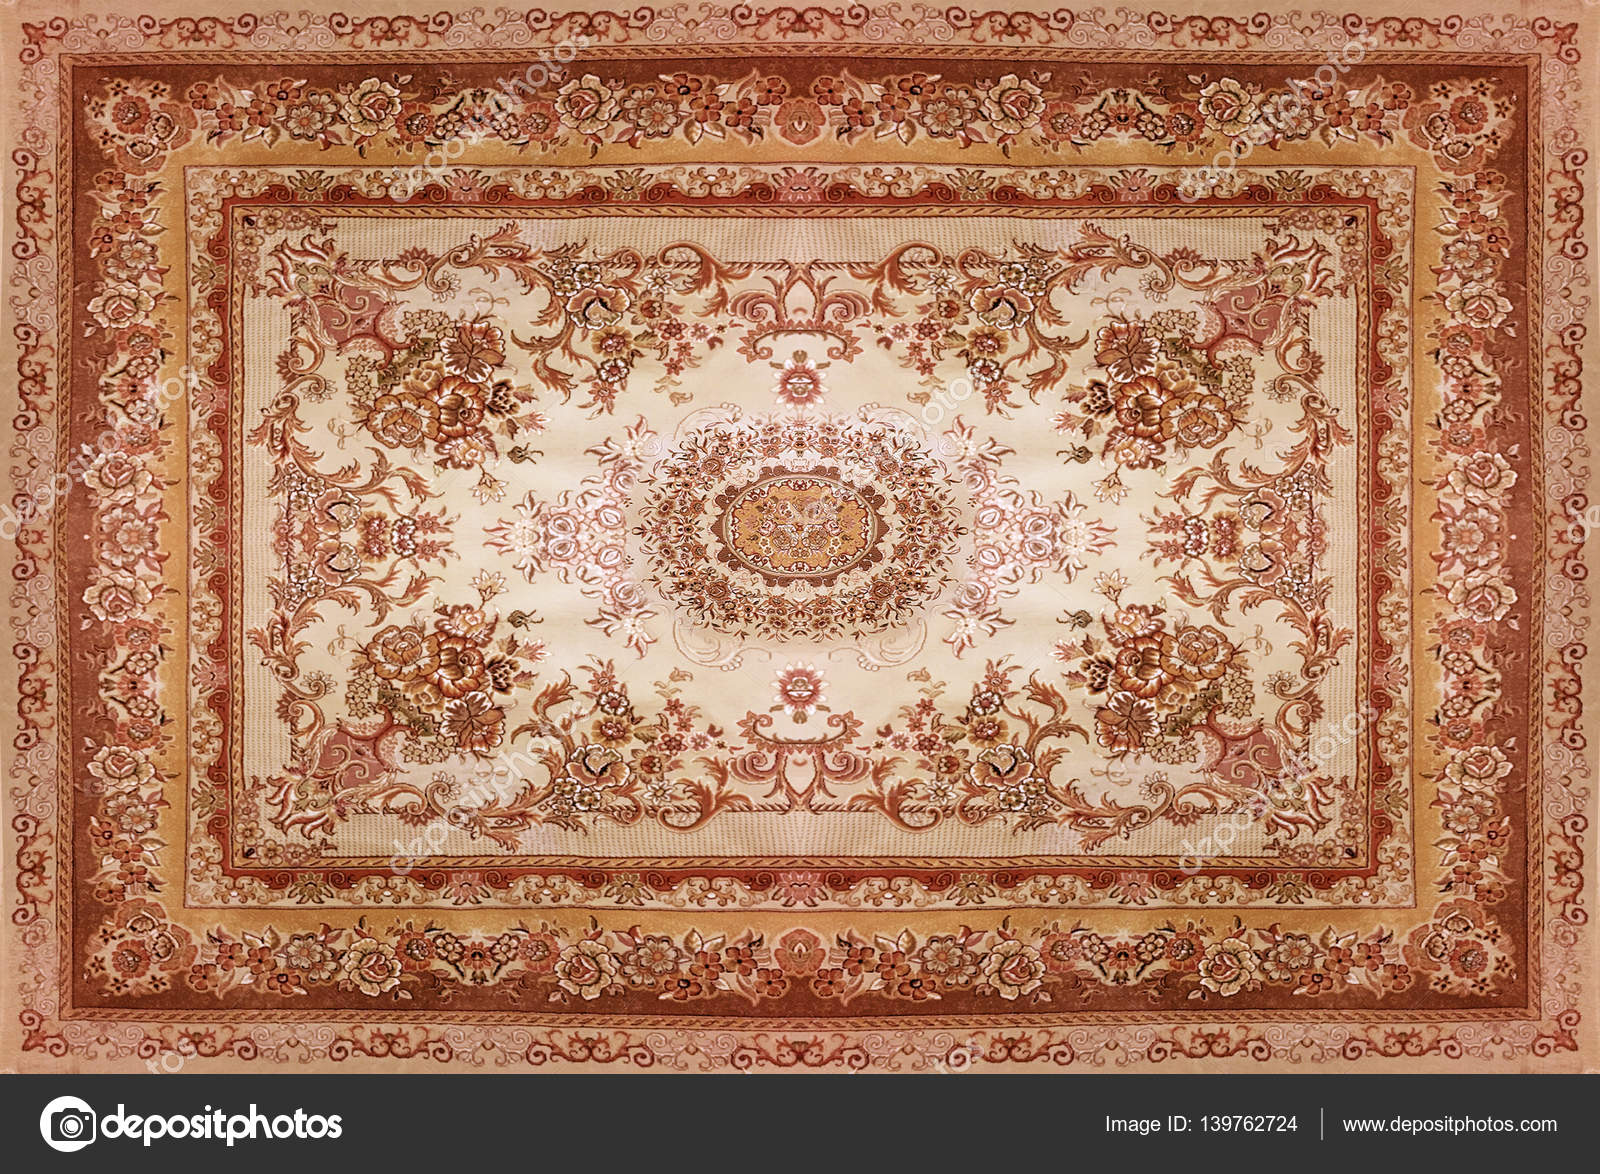 depositphotos_139762724-stock-photo-persian-carpet-texture-abstract-ornament.jpg